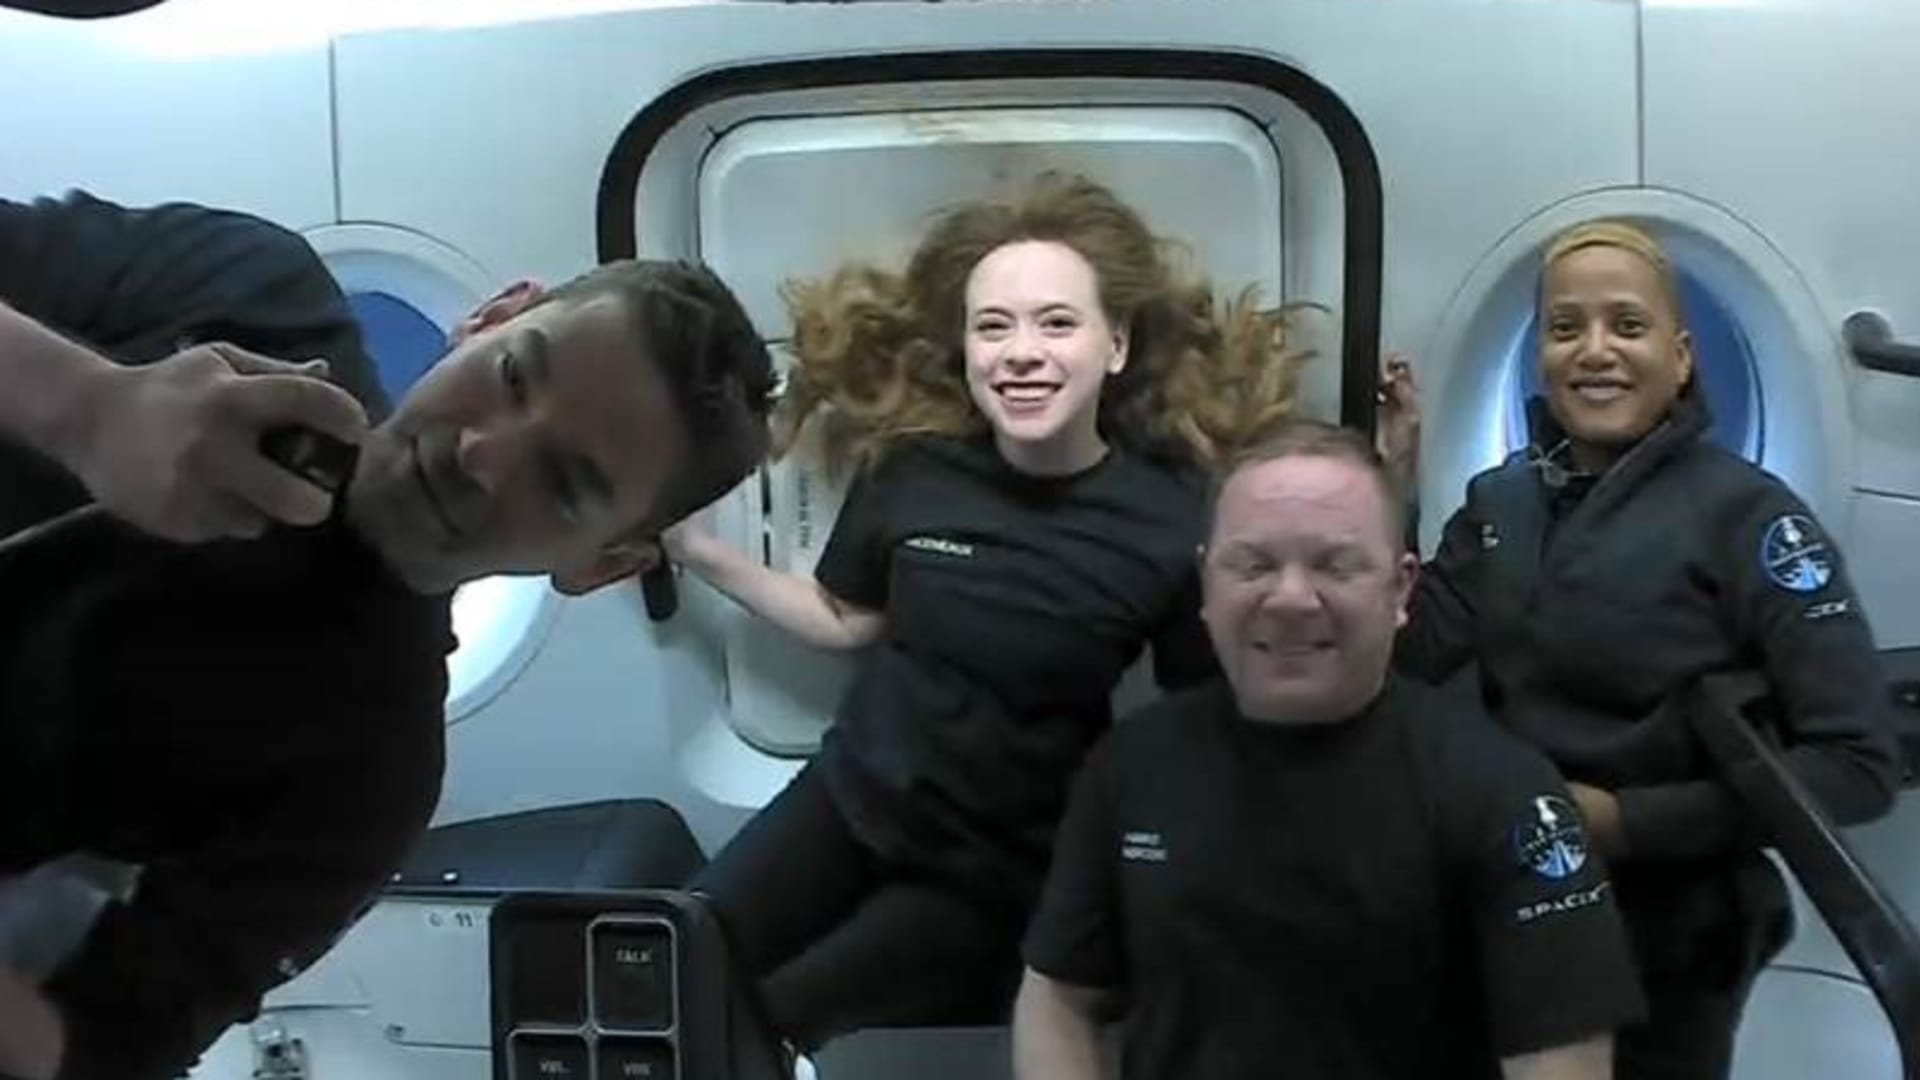 The first look at the crew in orbit, from left: Jared Isaacman, Hayley Arceneaux, Chris Sembroski, Sian Proctor.